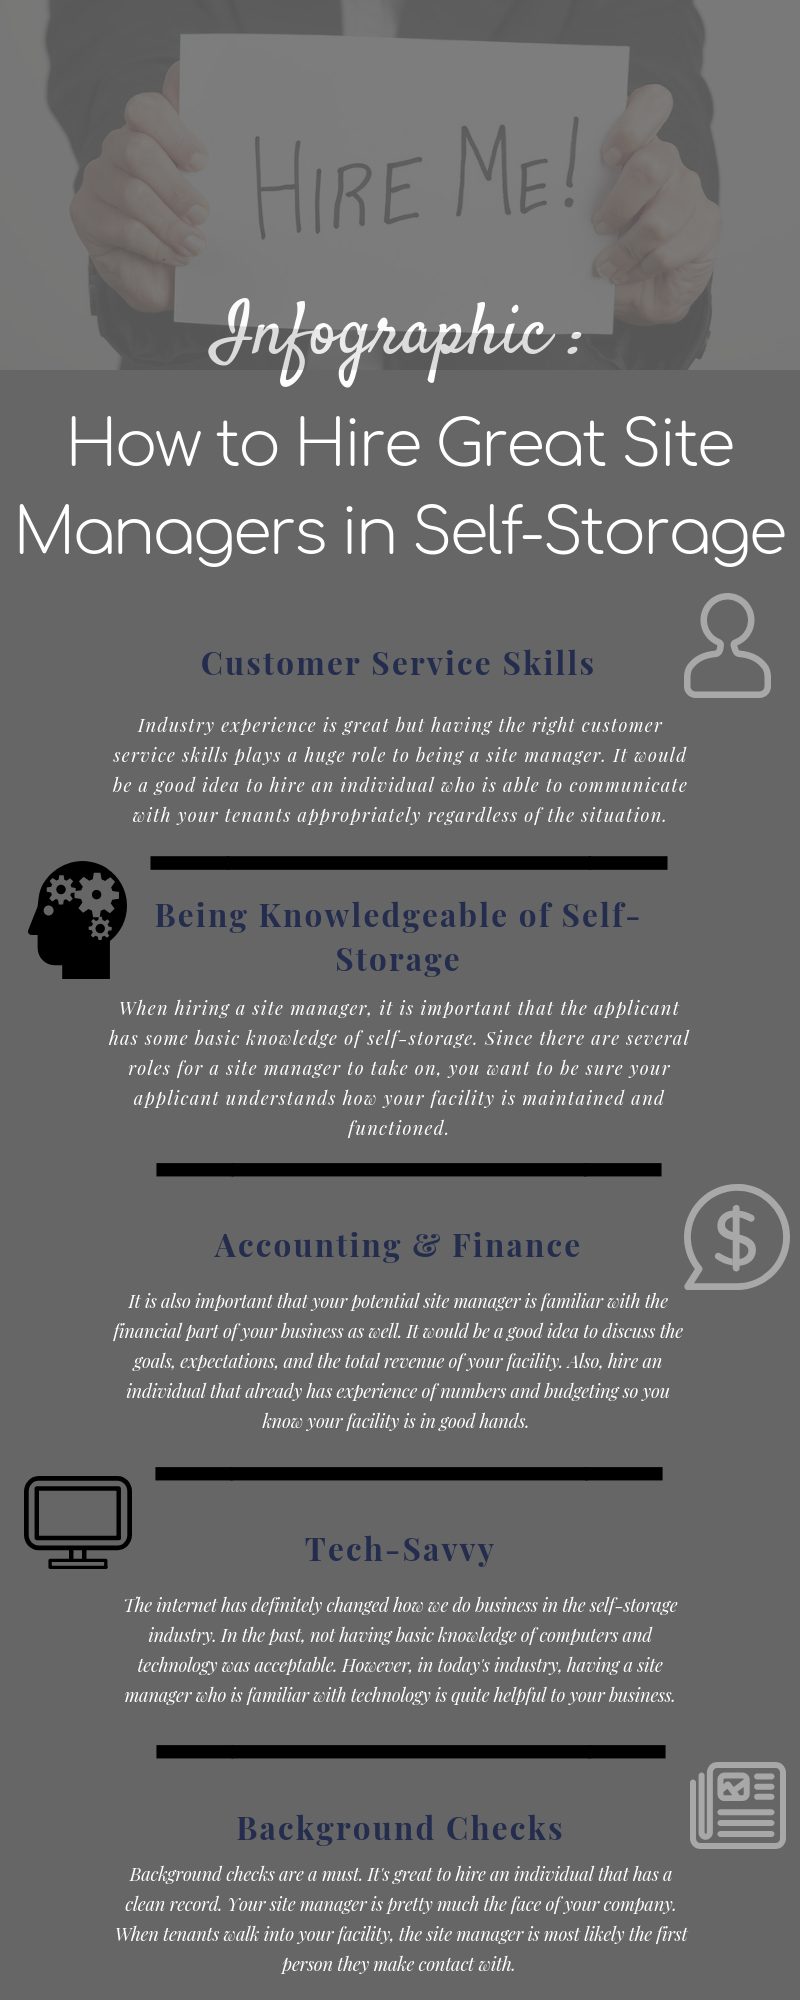 Infographic explaining 5 things to look for in a self storage site manager